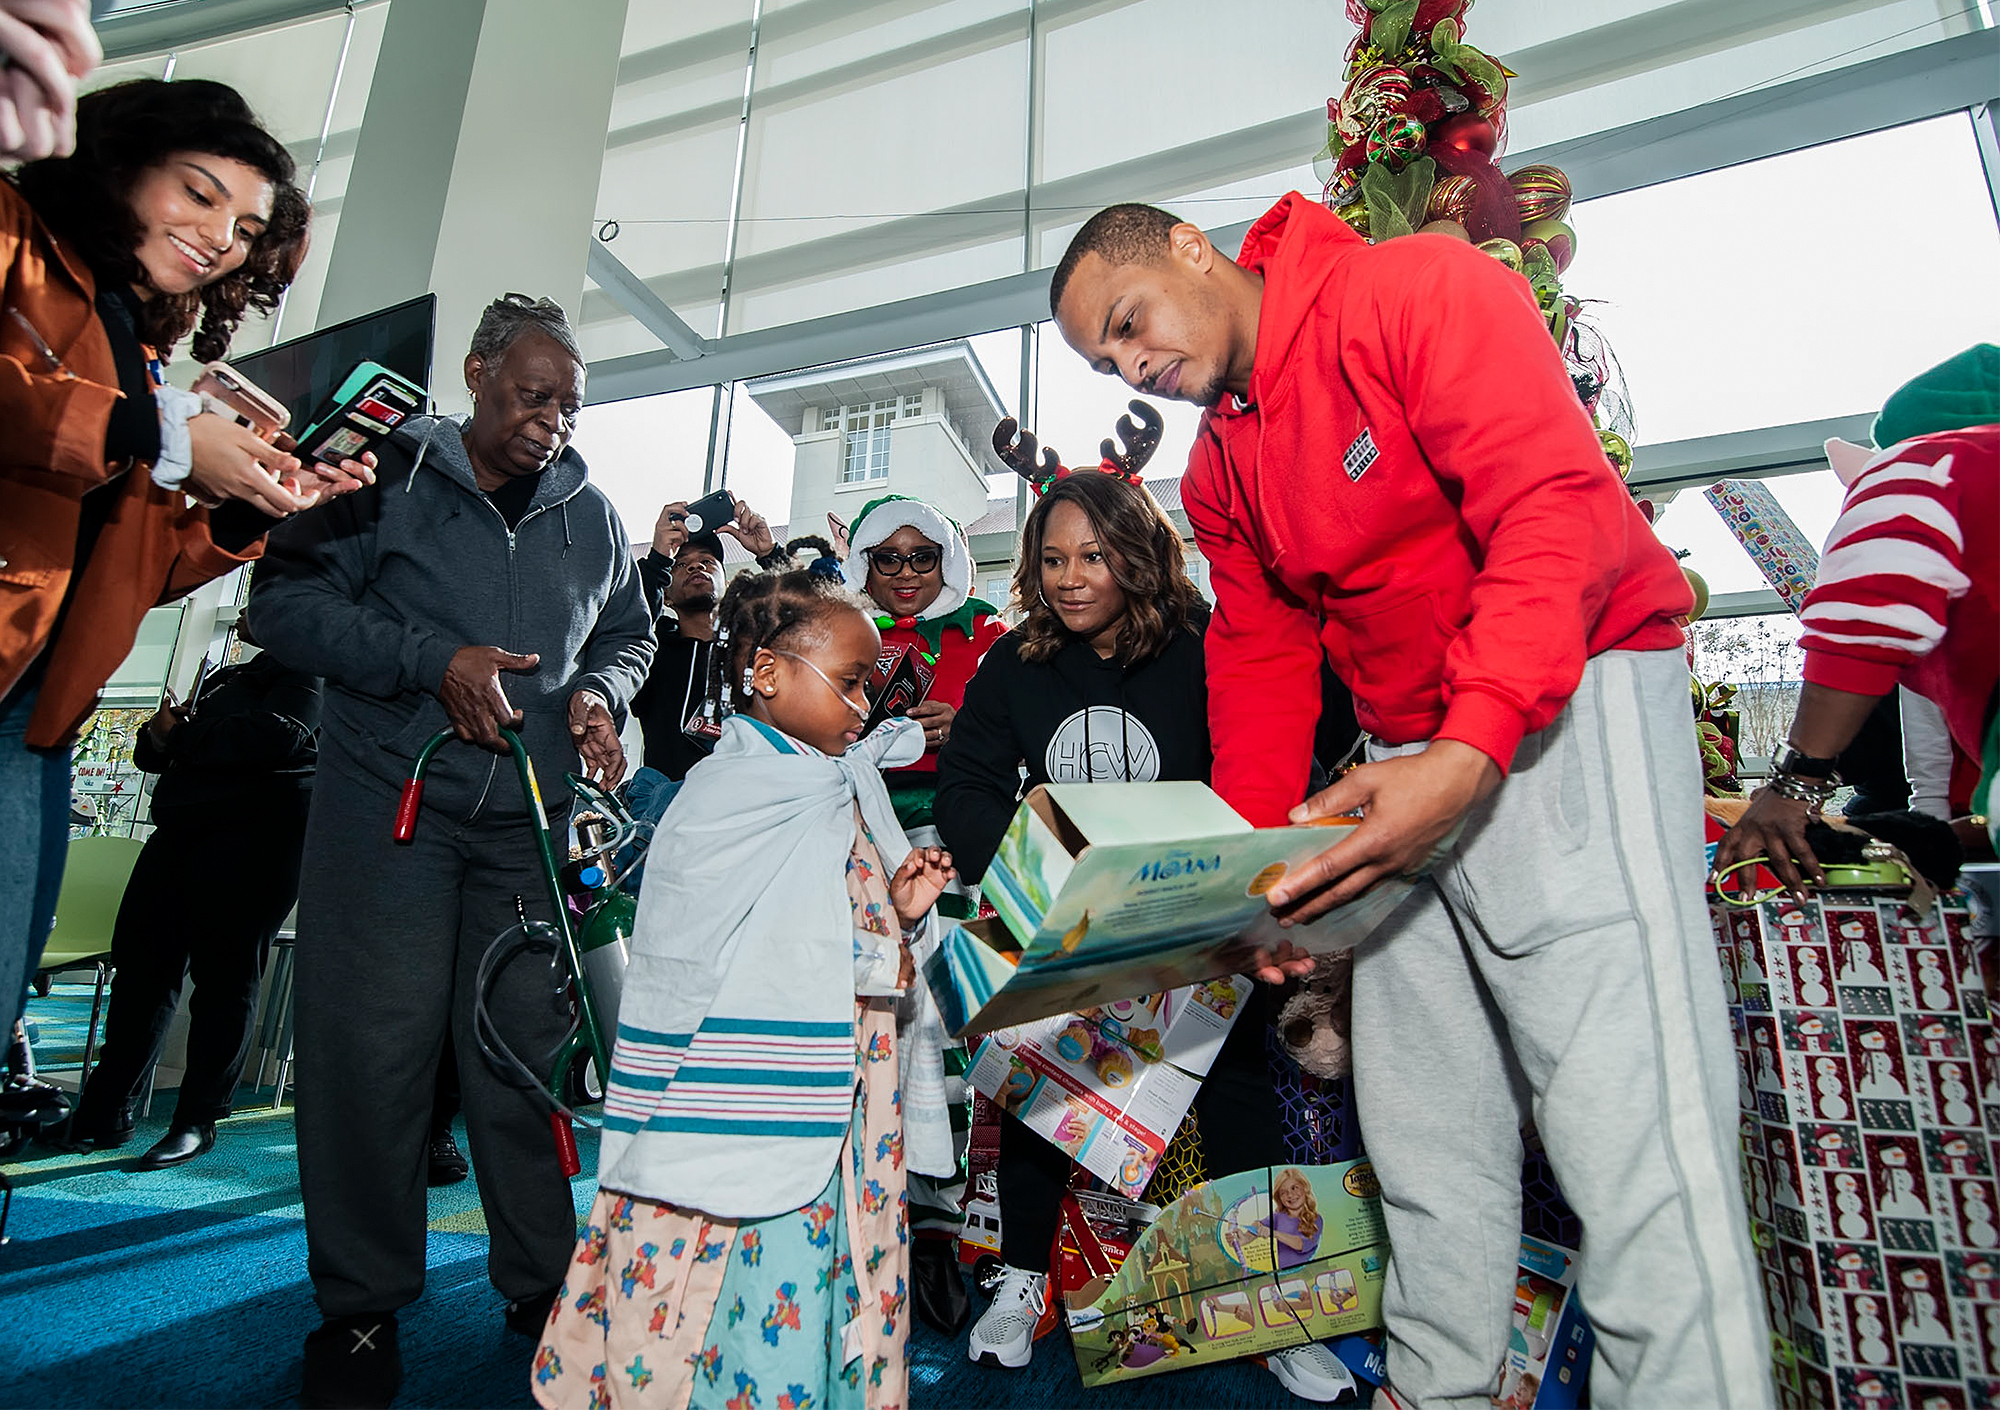 Rapper T.I. Spreads Some Holiday Cheer In Atlanta.